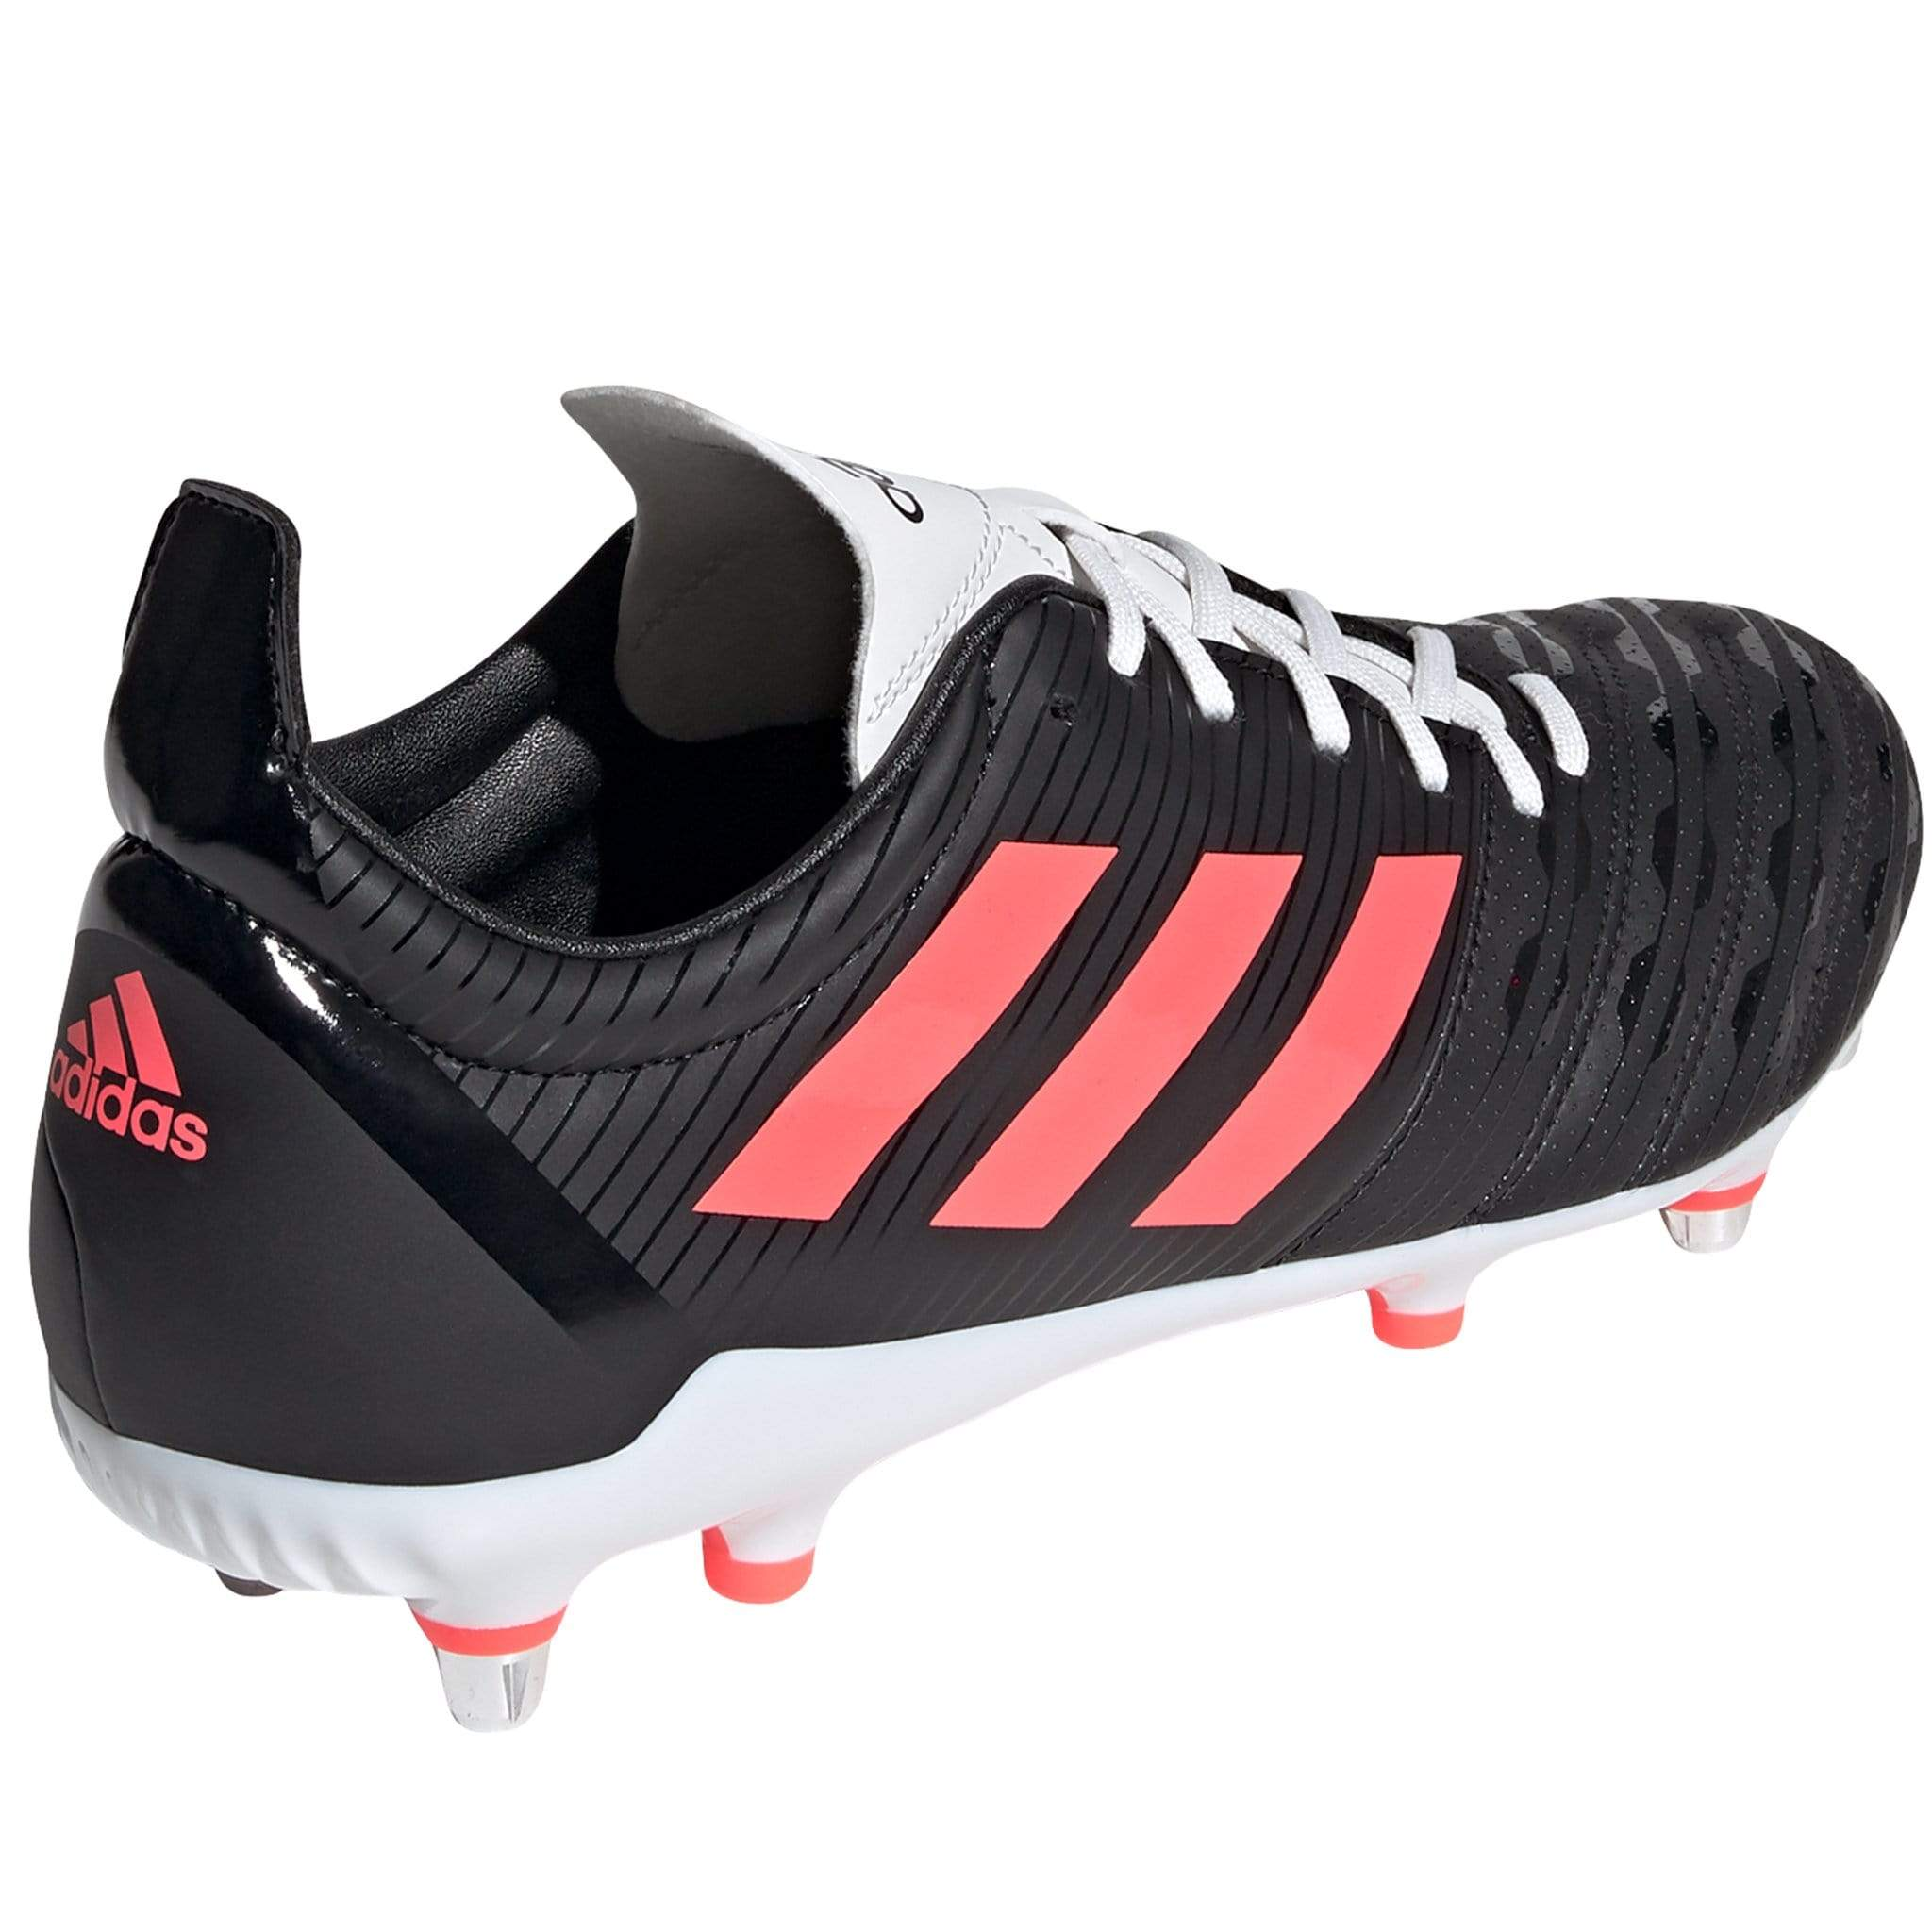 Side View Black Adidas Rugby Boot Pink Stripes White Laces